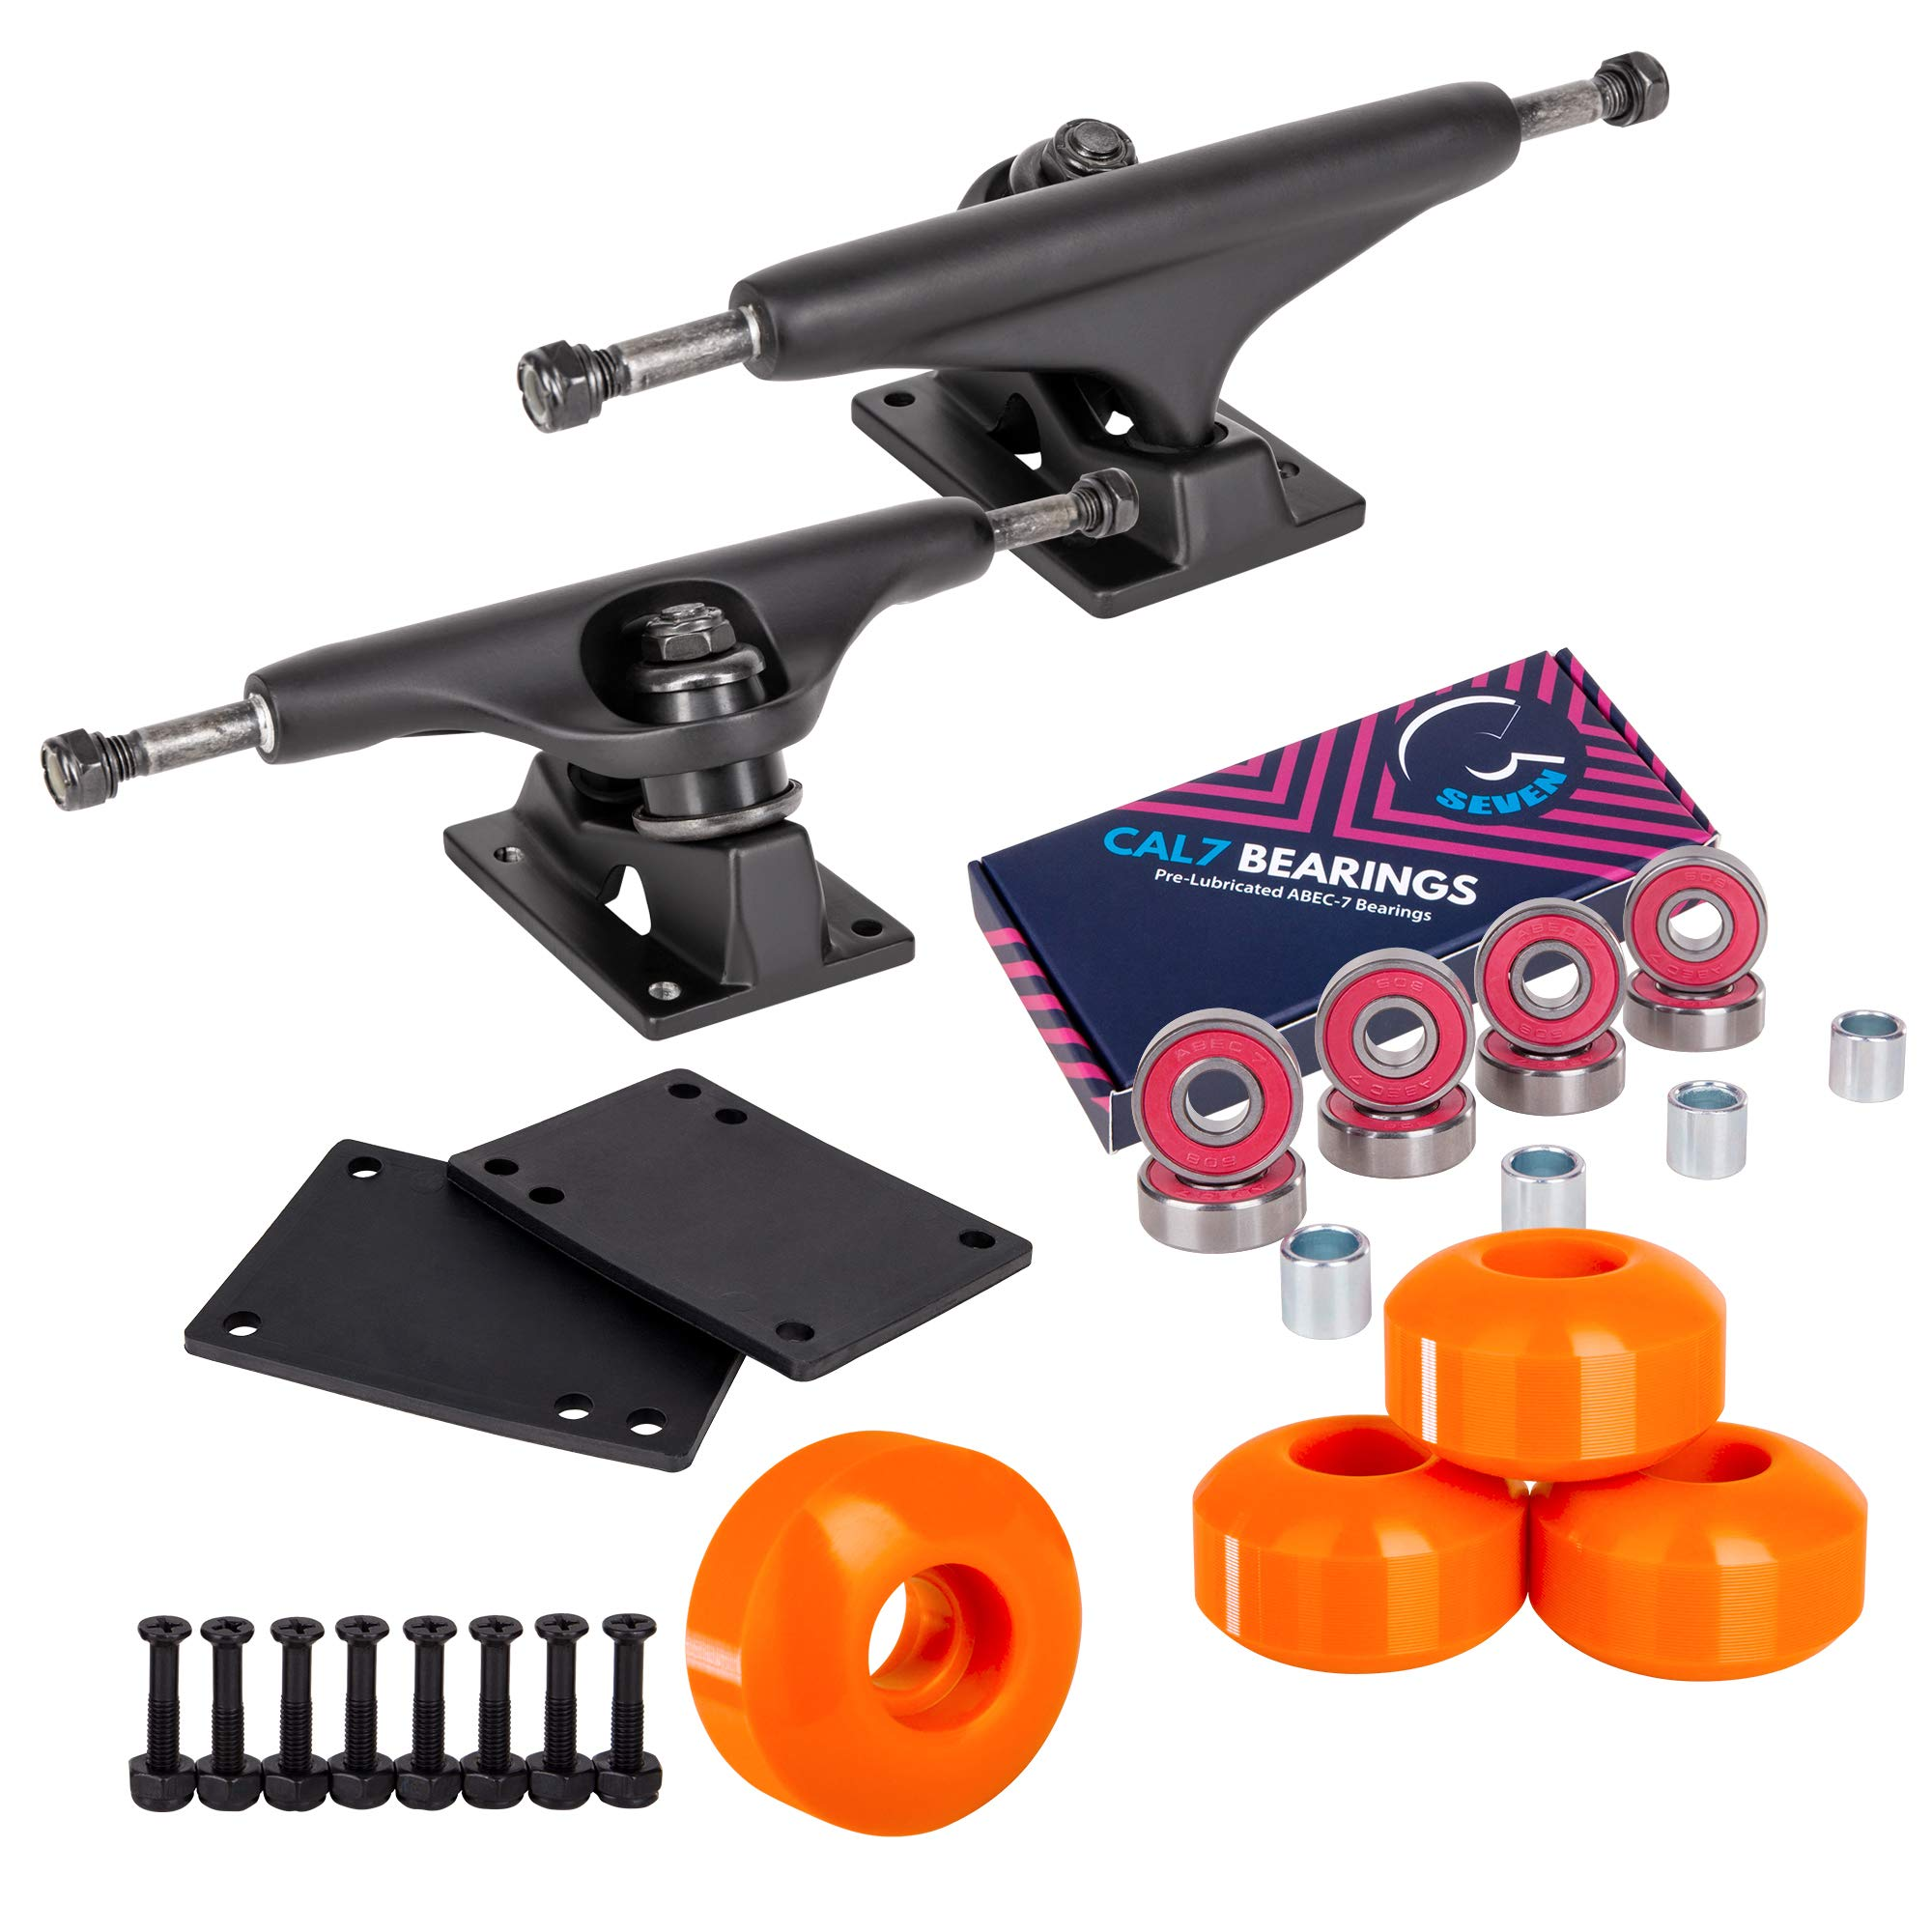 Cal 7 Skateboard Package, Complete Combo Set with 5.5 Inch Quality Aluminum Trucks, 52mm 99A Wheels, Bearings & Hardware (Orange) by Cal 7